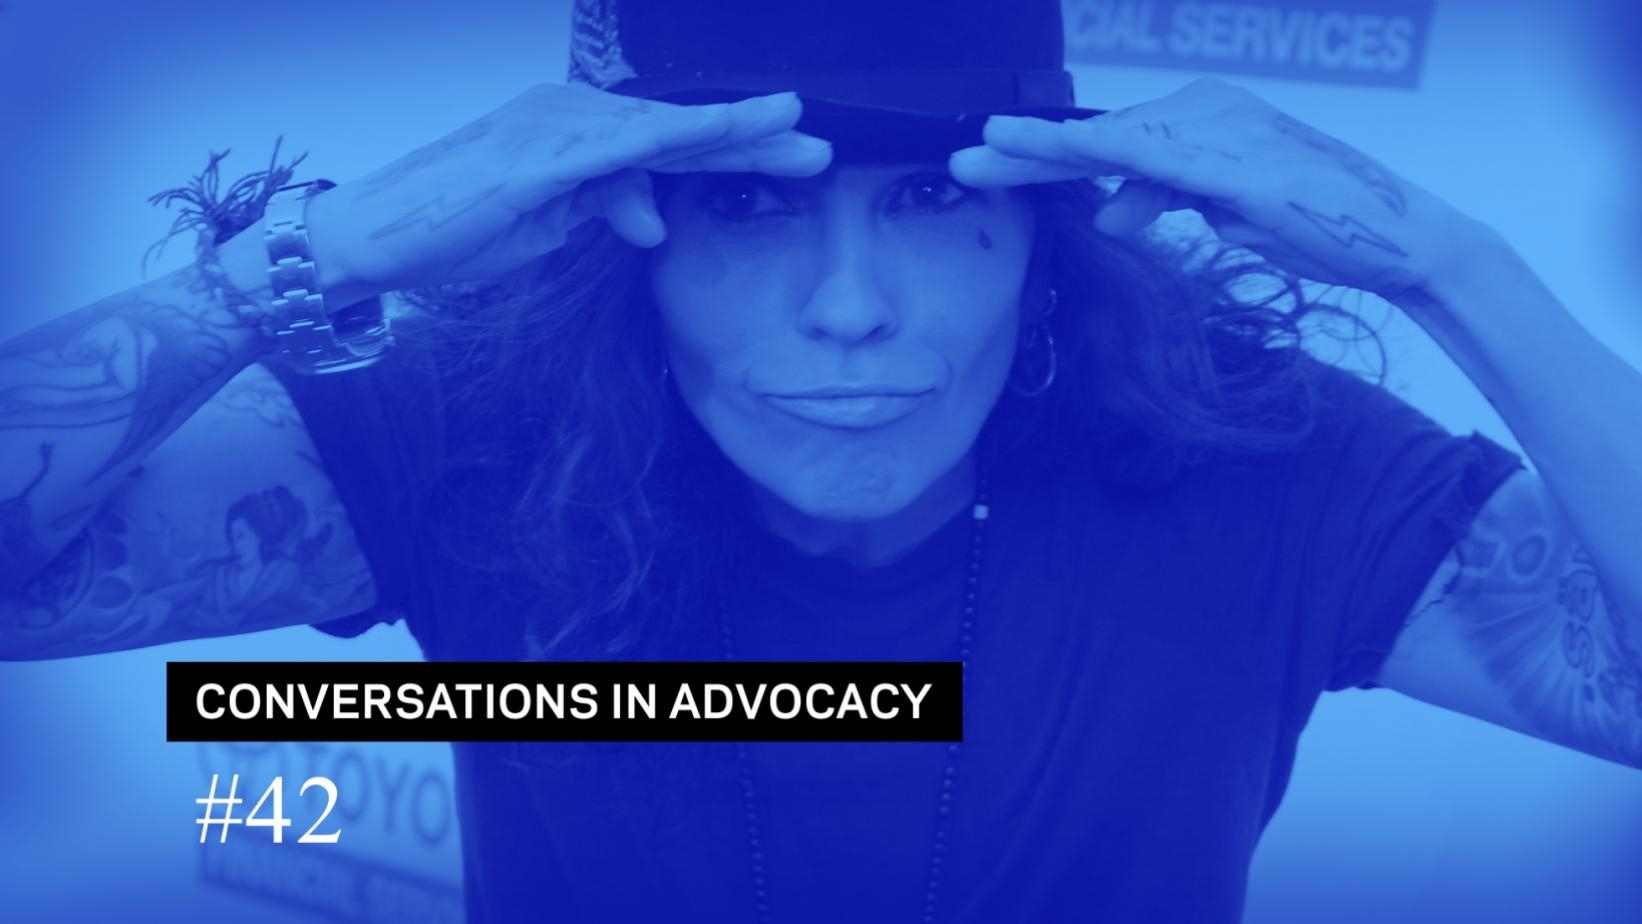 Conversations In Advocacy #42